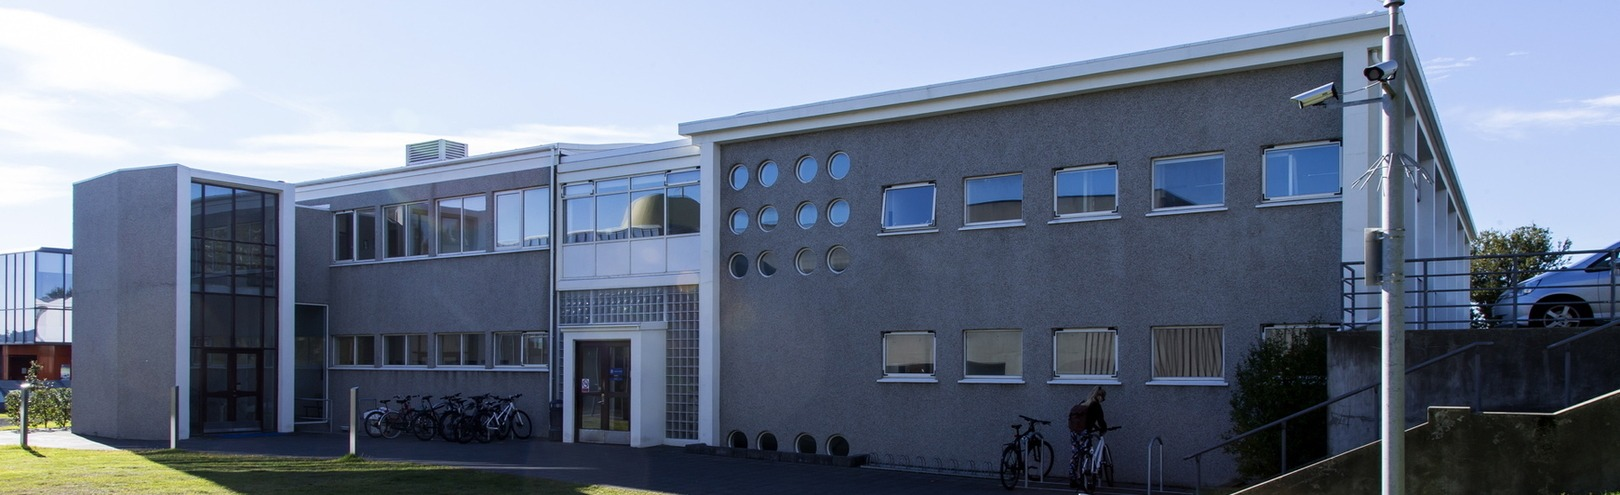 Degree certificates to be presented soon - Available at University of Iceland